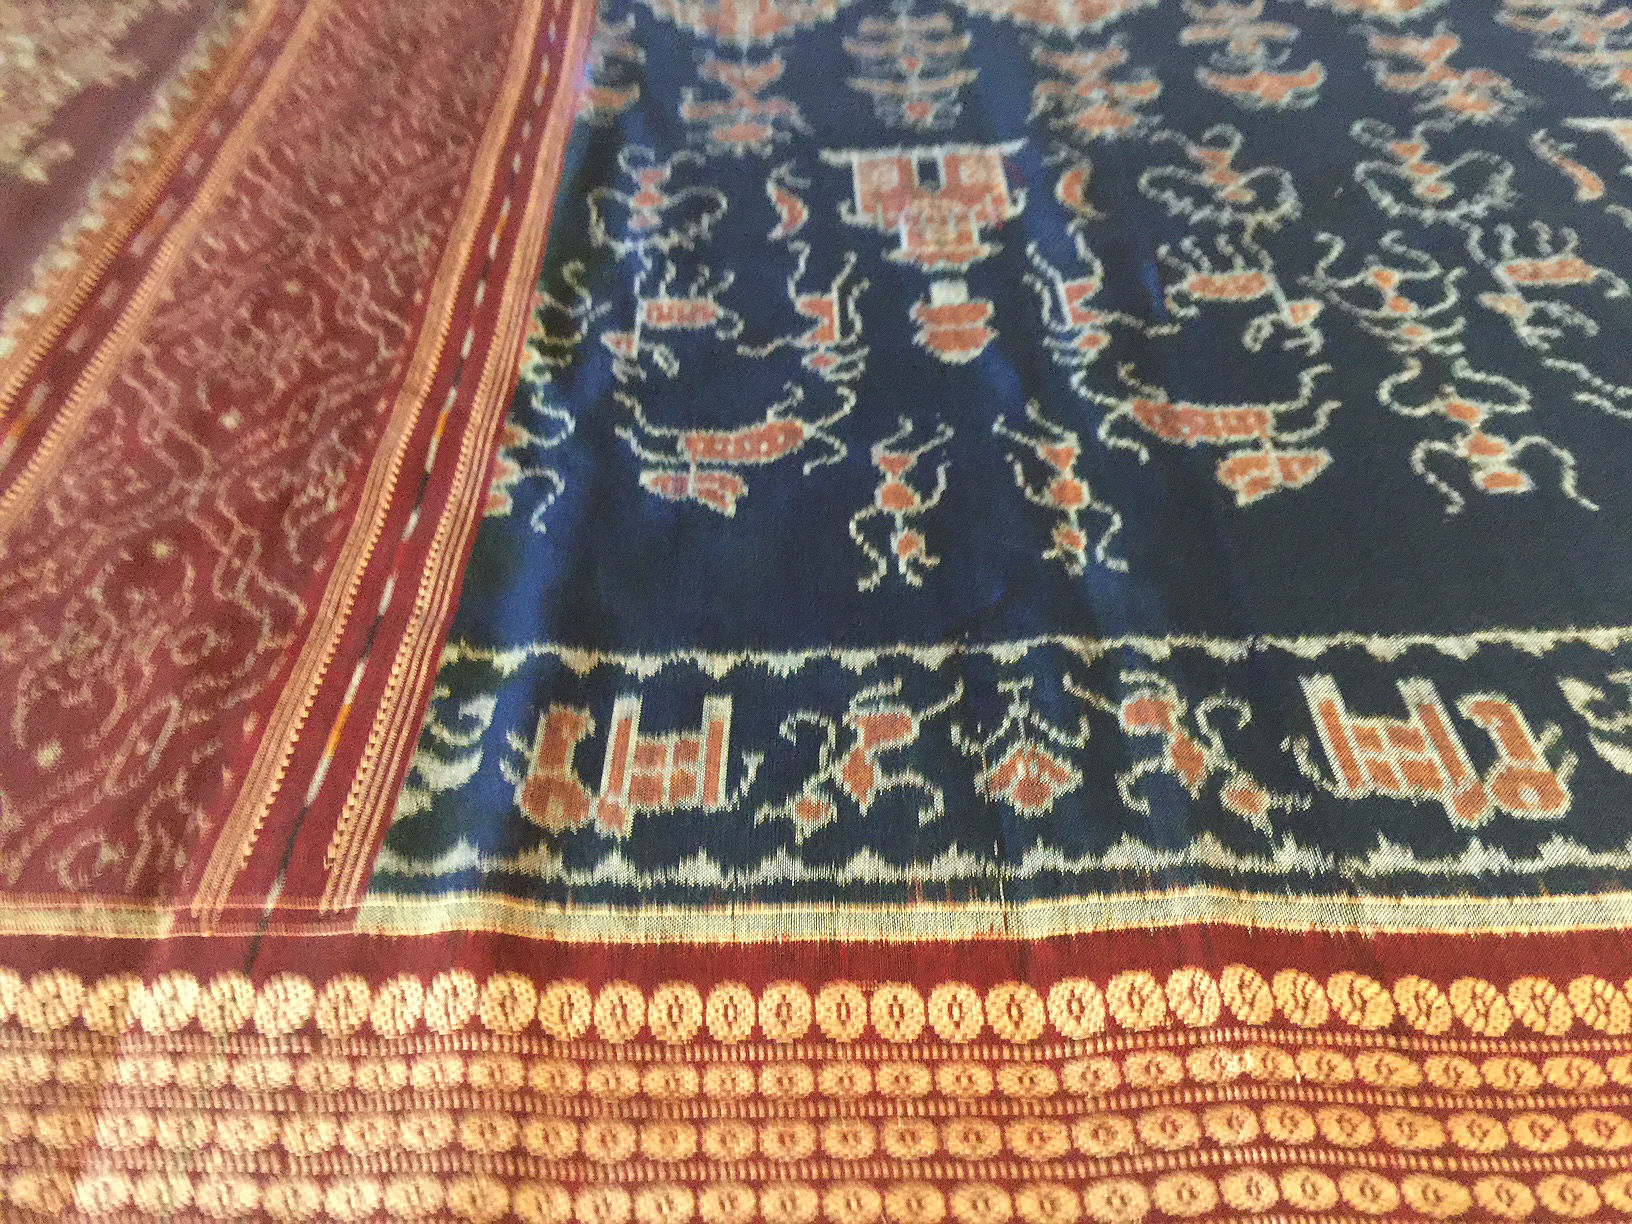 Orissa Fine Ikat in Navy